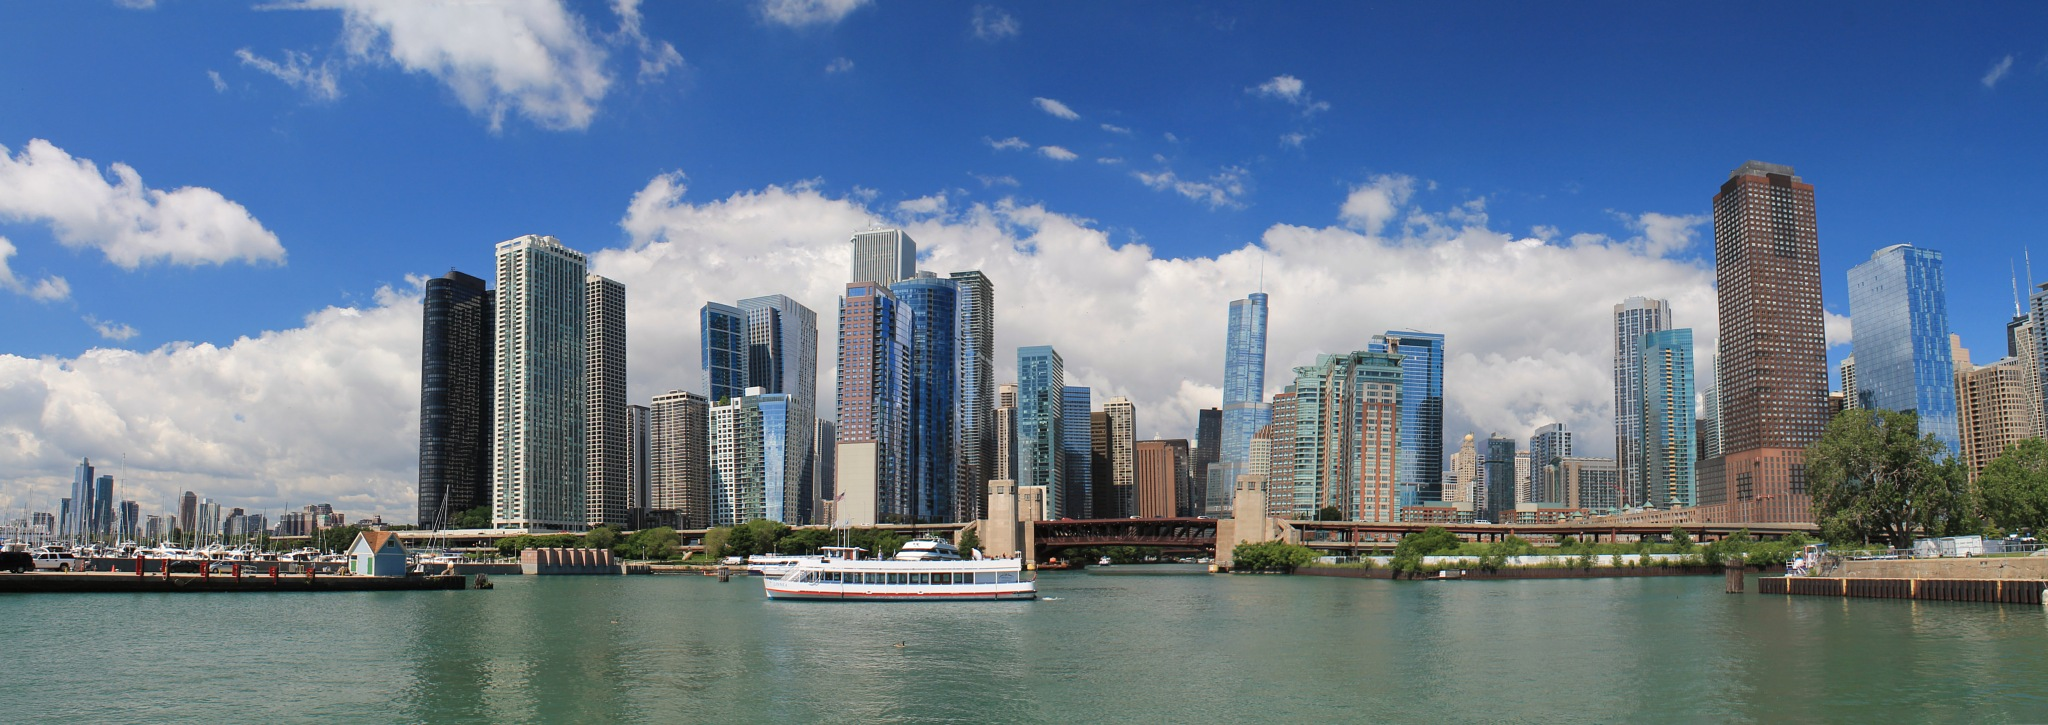 Chicago skyline by Paul Bownas